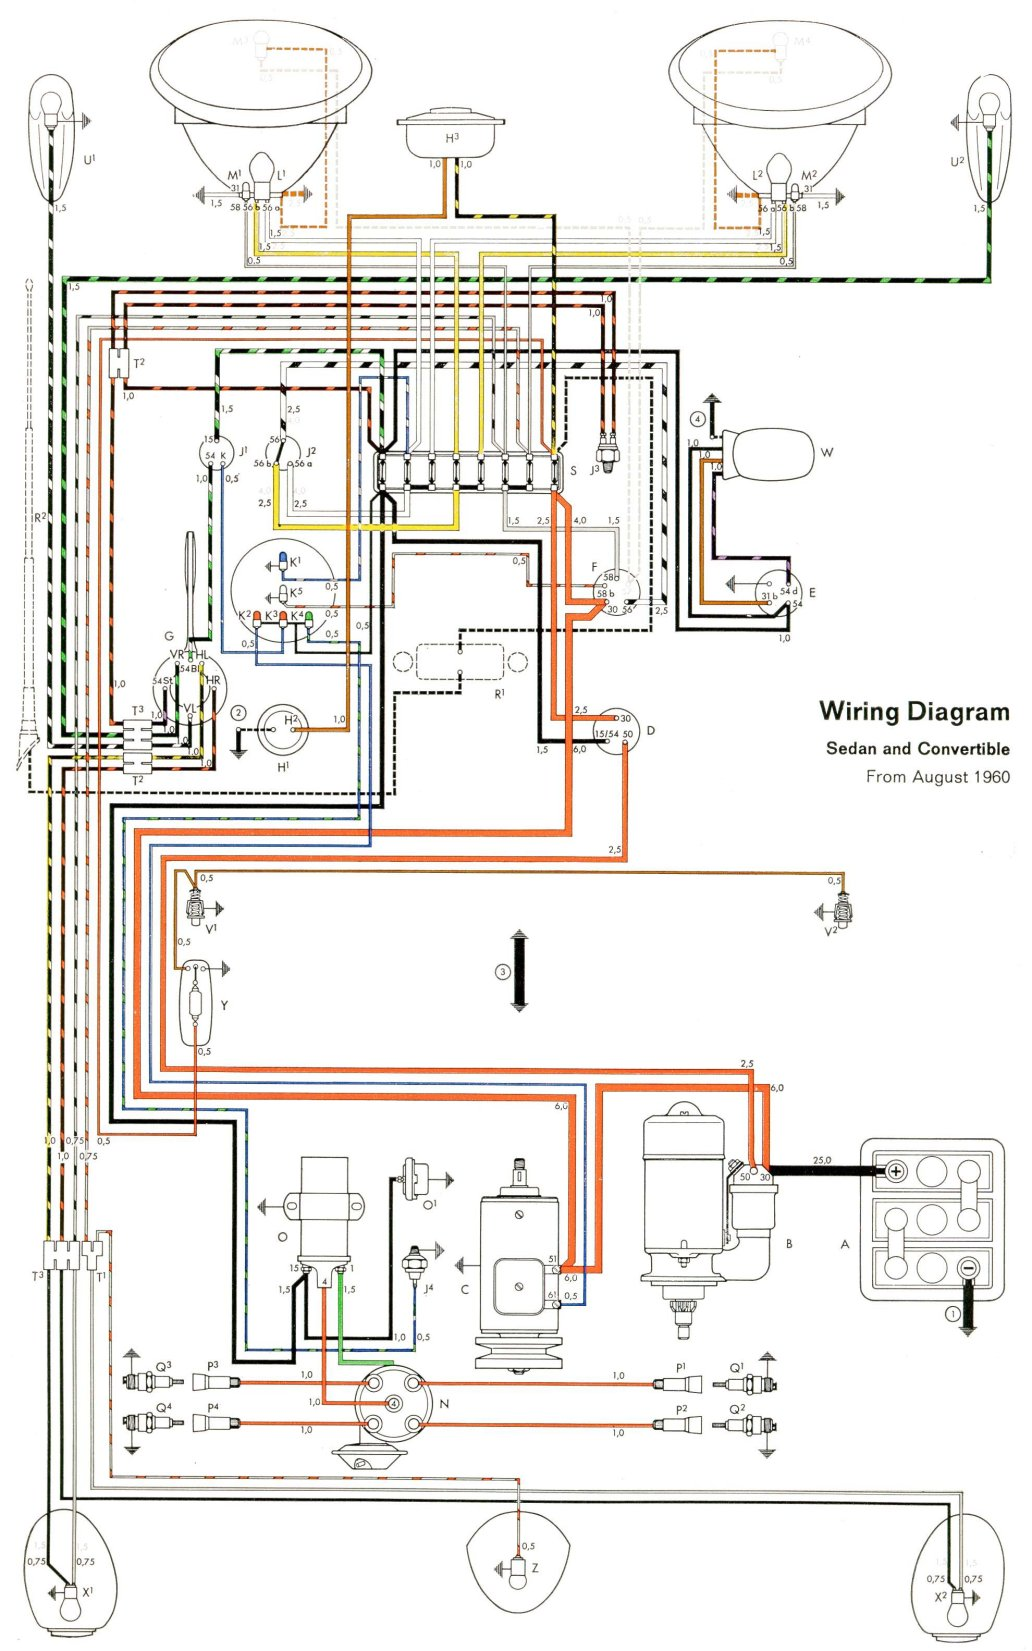 wiring diagram for 1979 vw super beetle wiring diagram database 73 beetle bug wiring-diagram thesamba com type 1 wiring diagrams 1979 ford mustang wiring diagram wiring diagram for 1979 vw super beetle